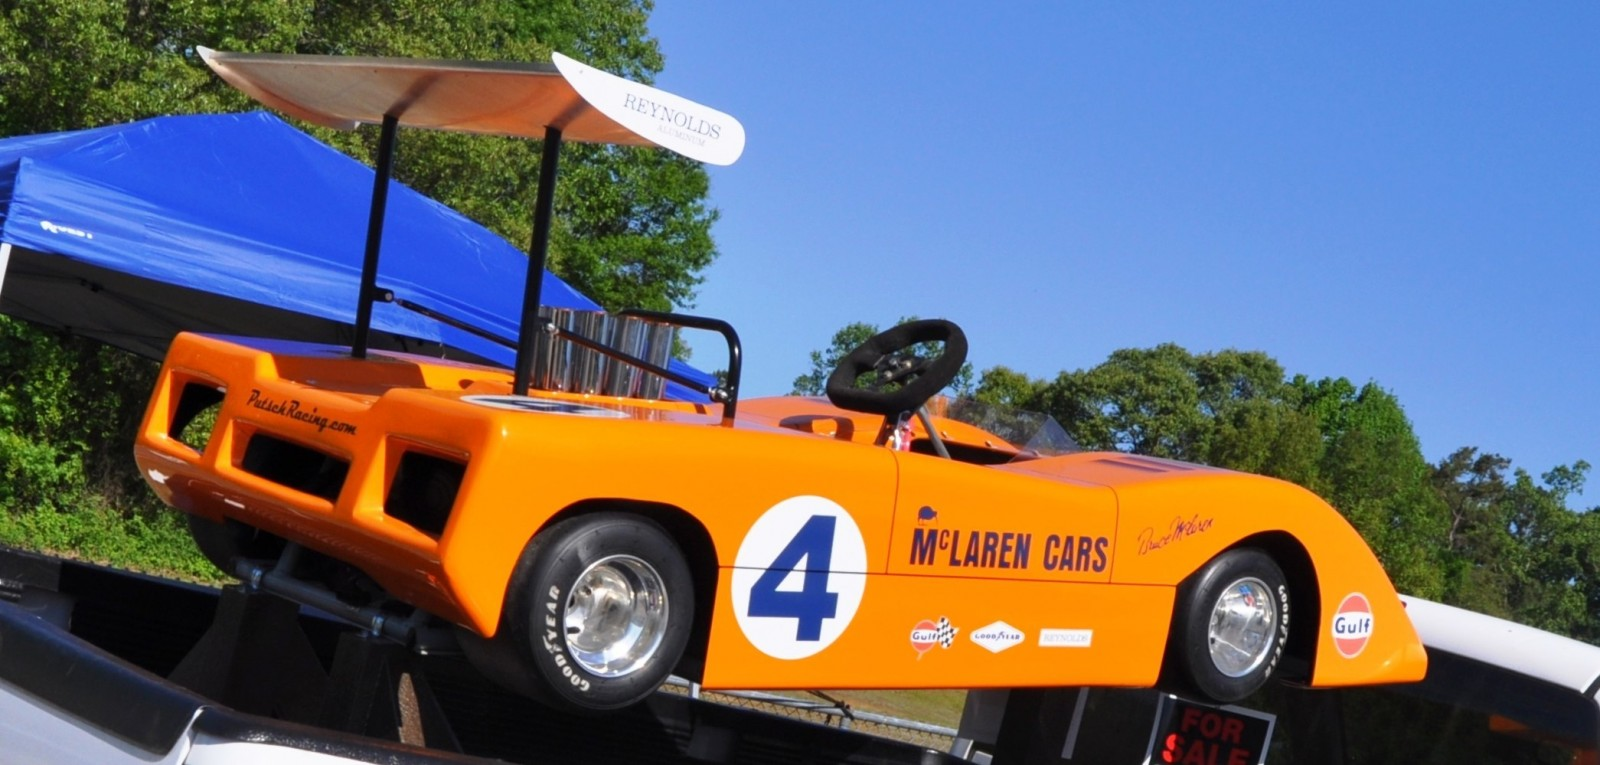 McLaren M8B Go-Kart Seeking Posh New Home, McLaren Owner Strongly Preferred 5